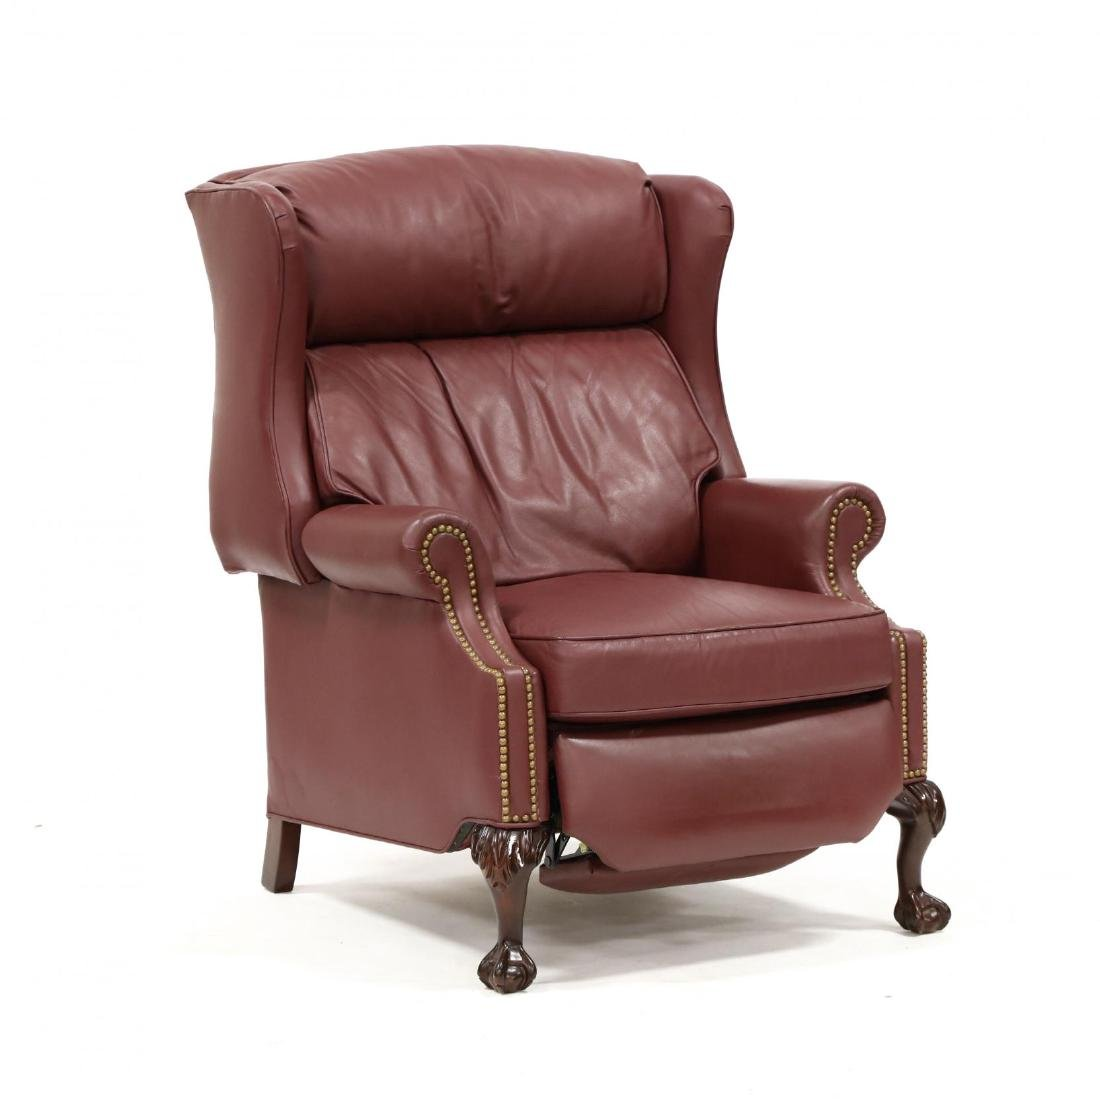 Leathercraft, Chippendale Style Wing Back Recliner